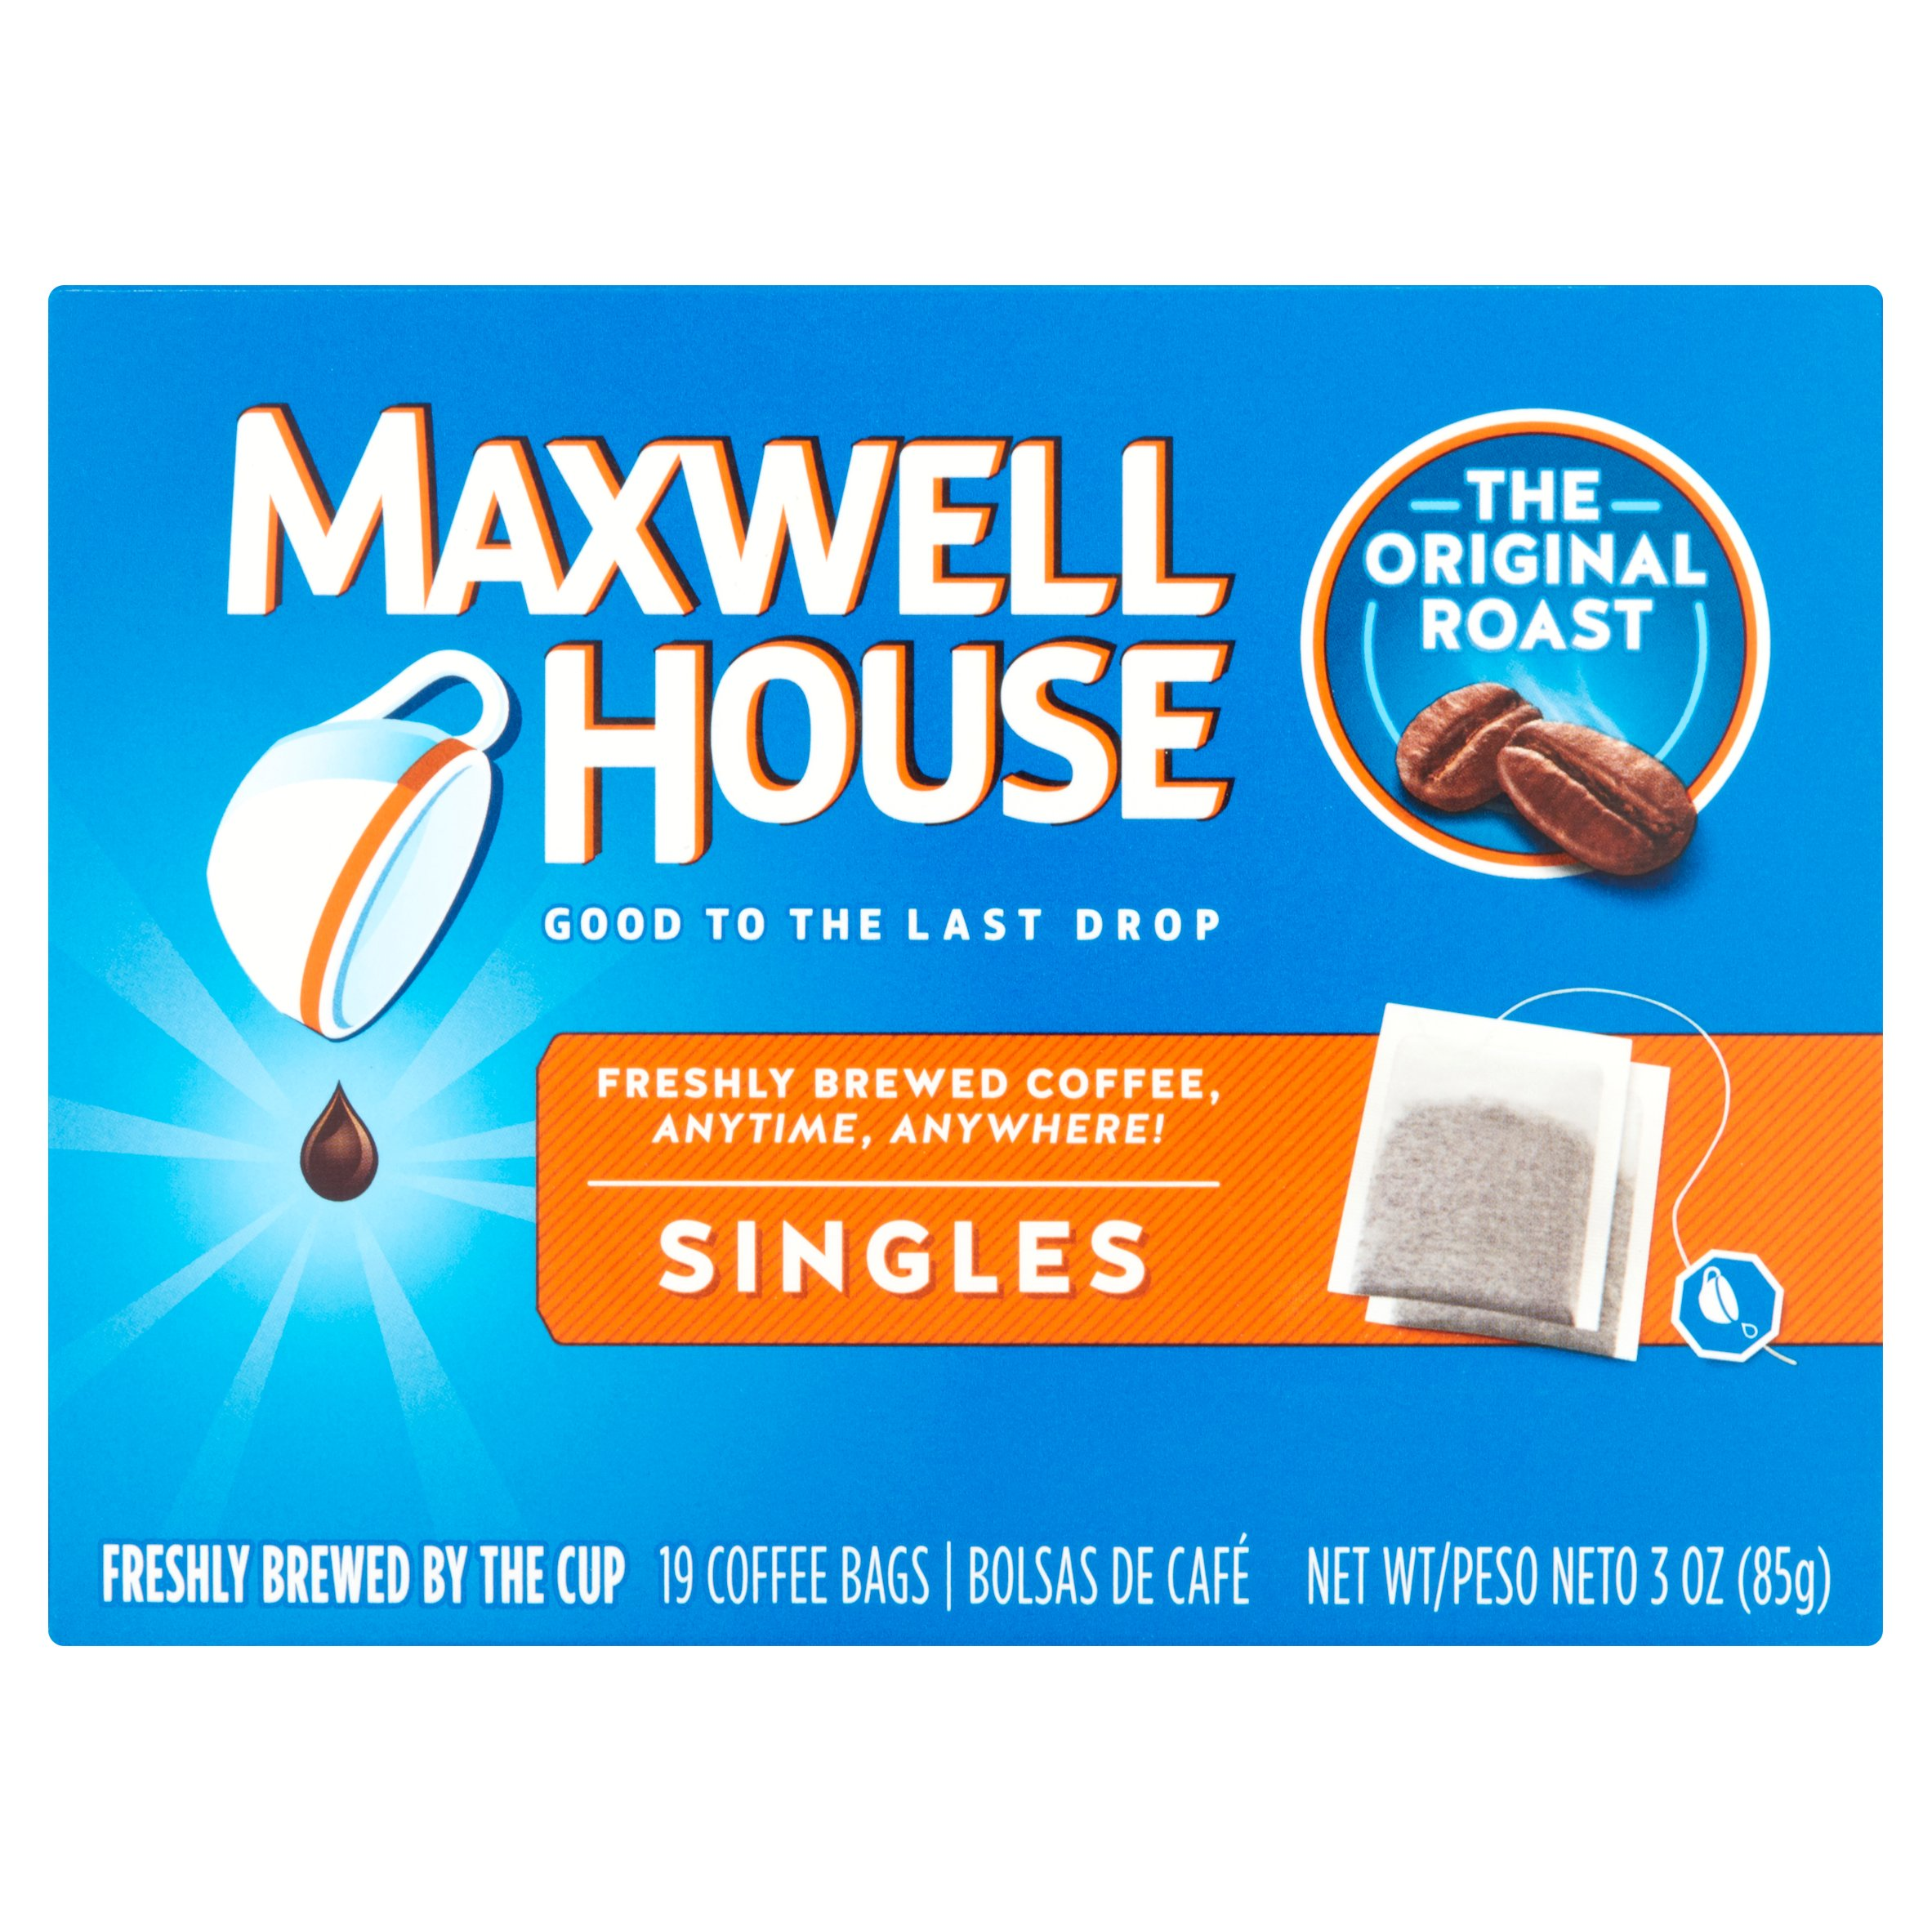 hindu singles in maxwell All the singles and albums of maxwell, peak chart positions, career stats, week-by-week chart runs and latest news.